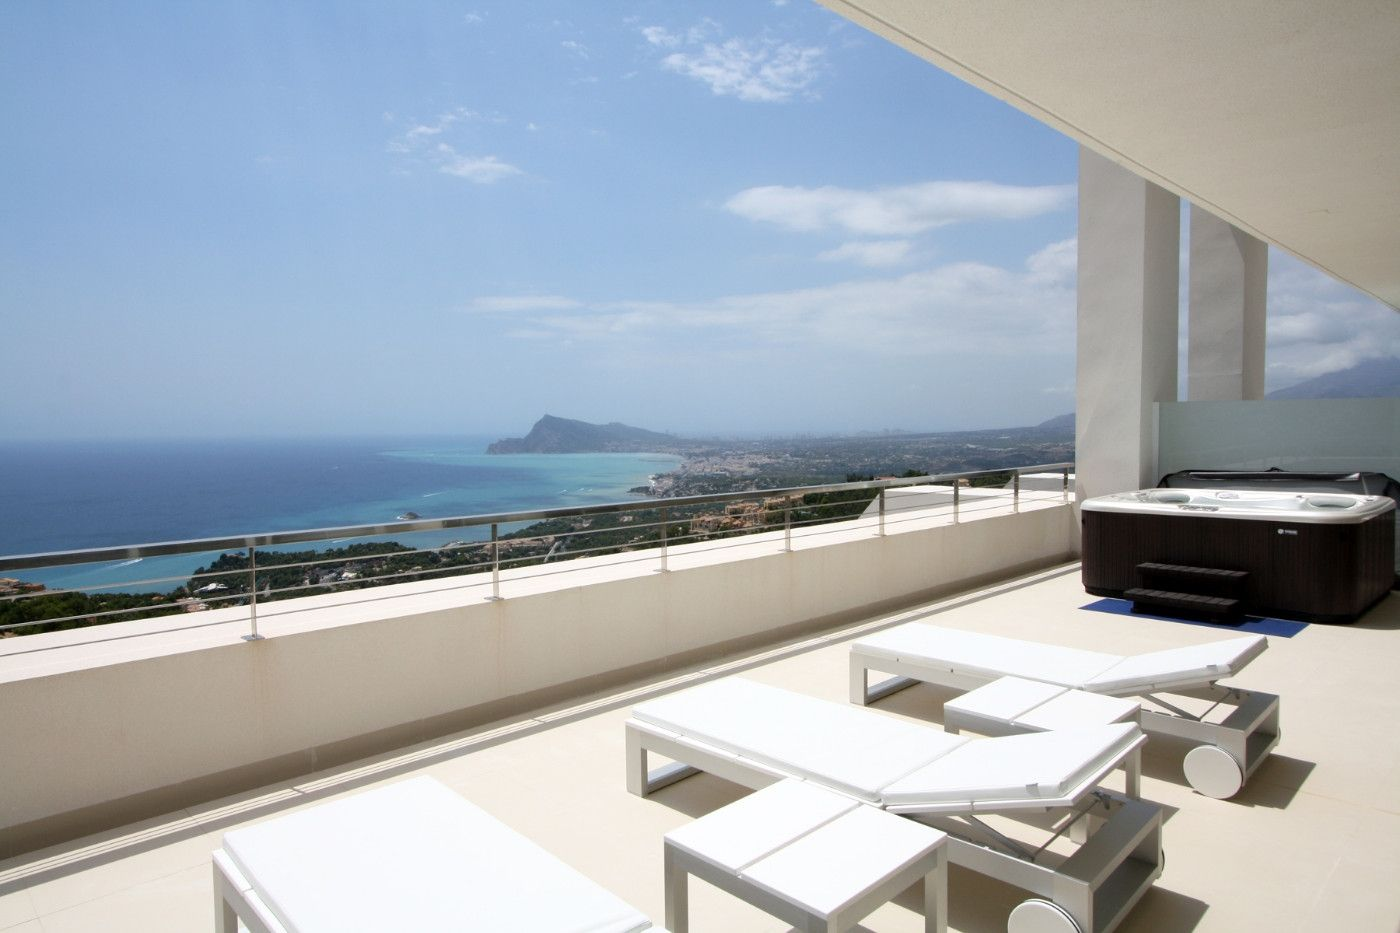 Ático  Calle munich. Penthouse for sale altea hills